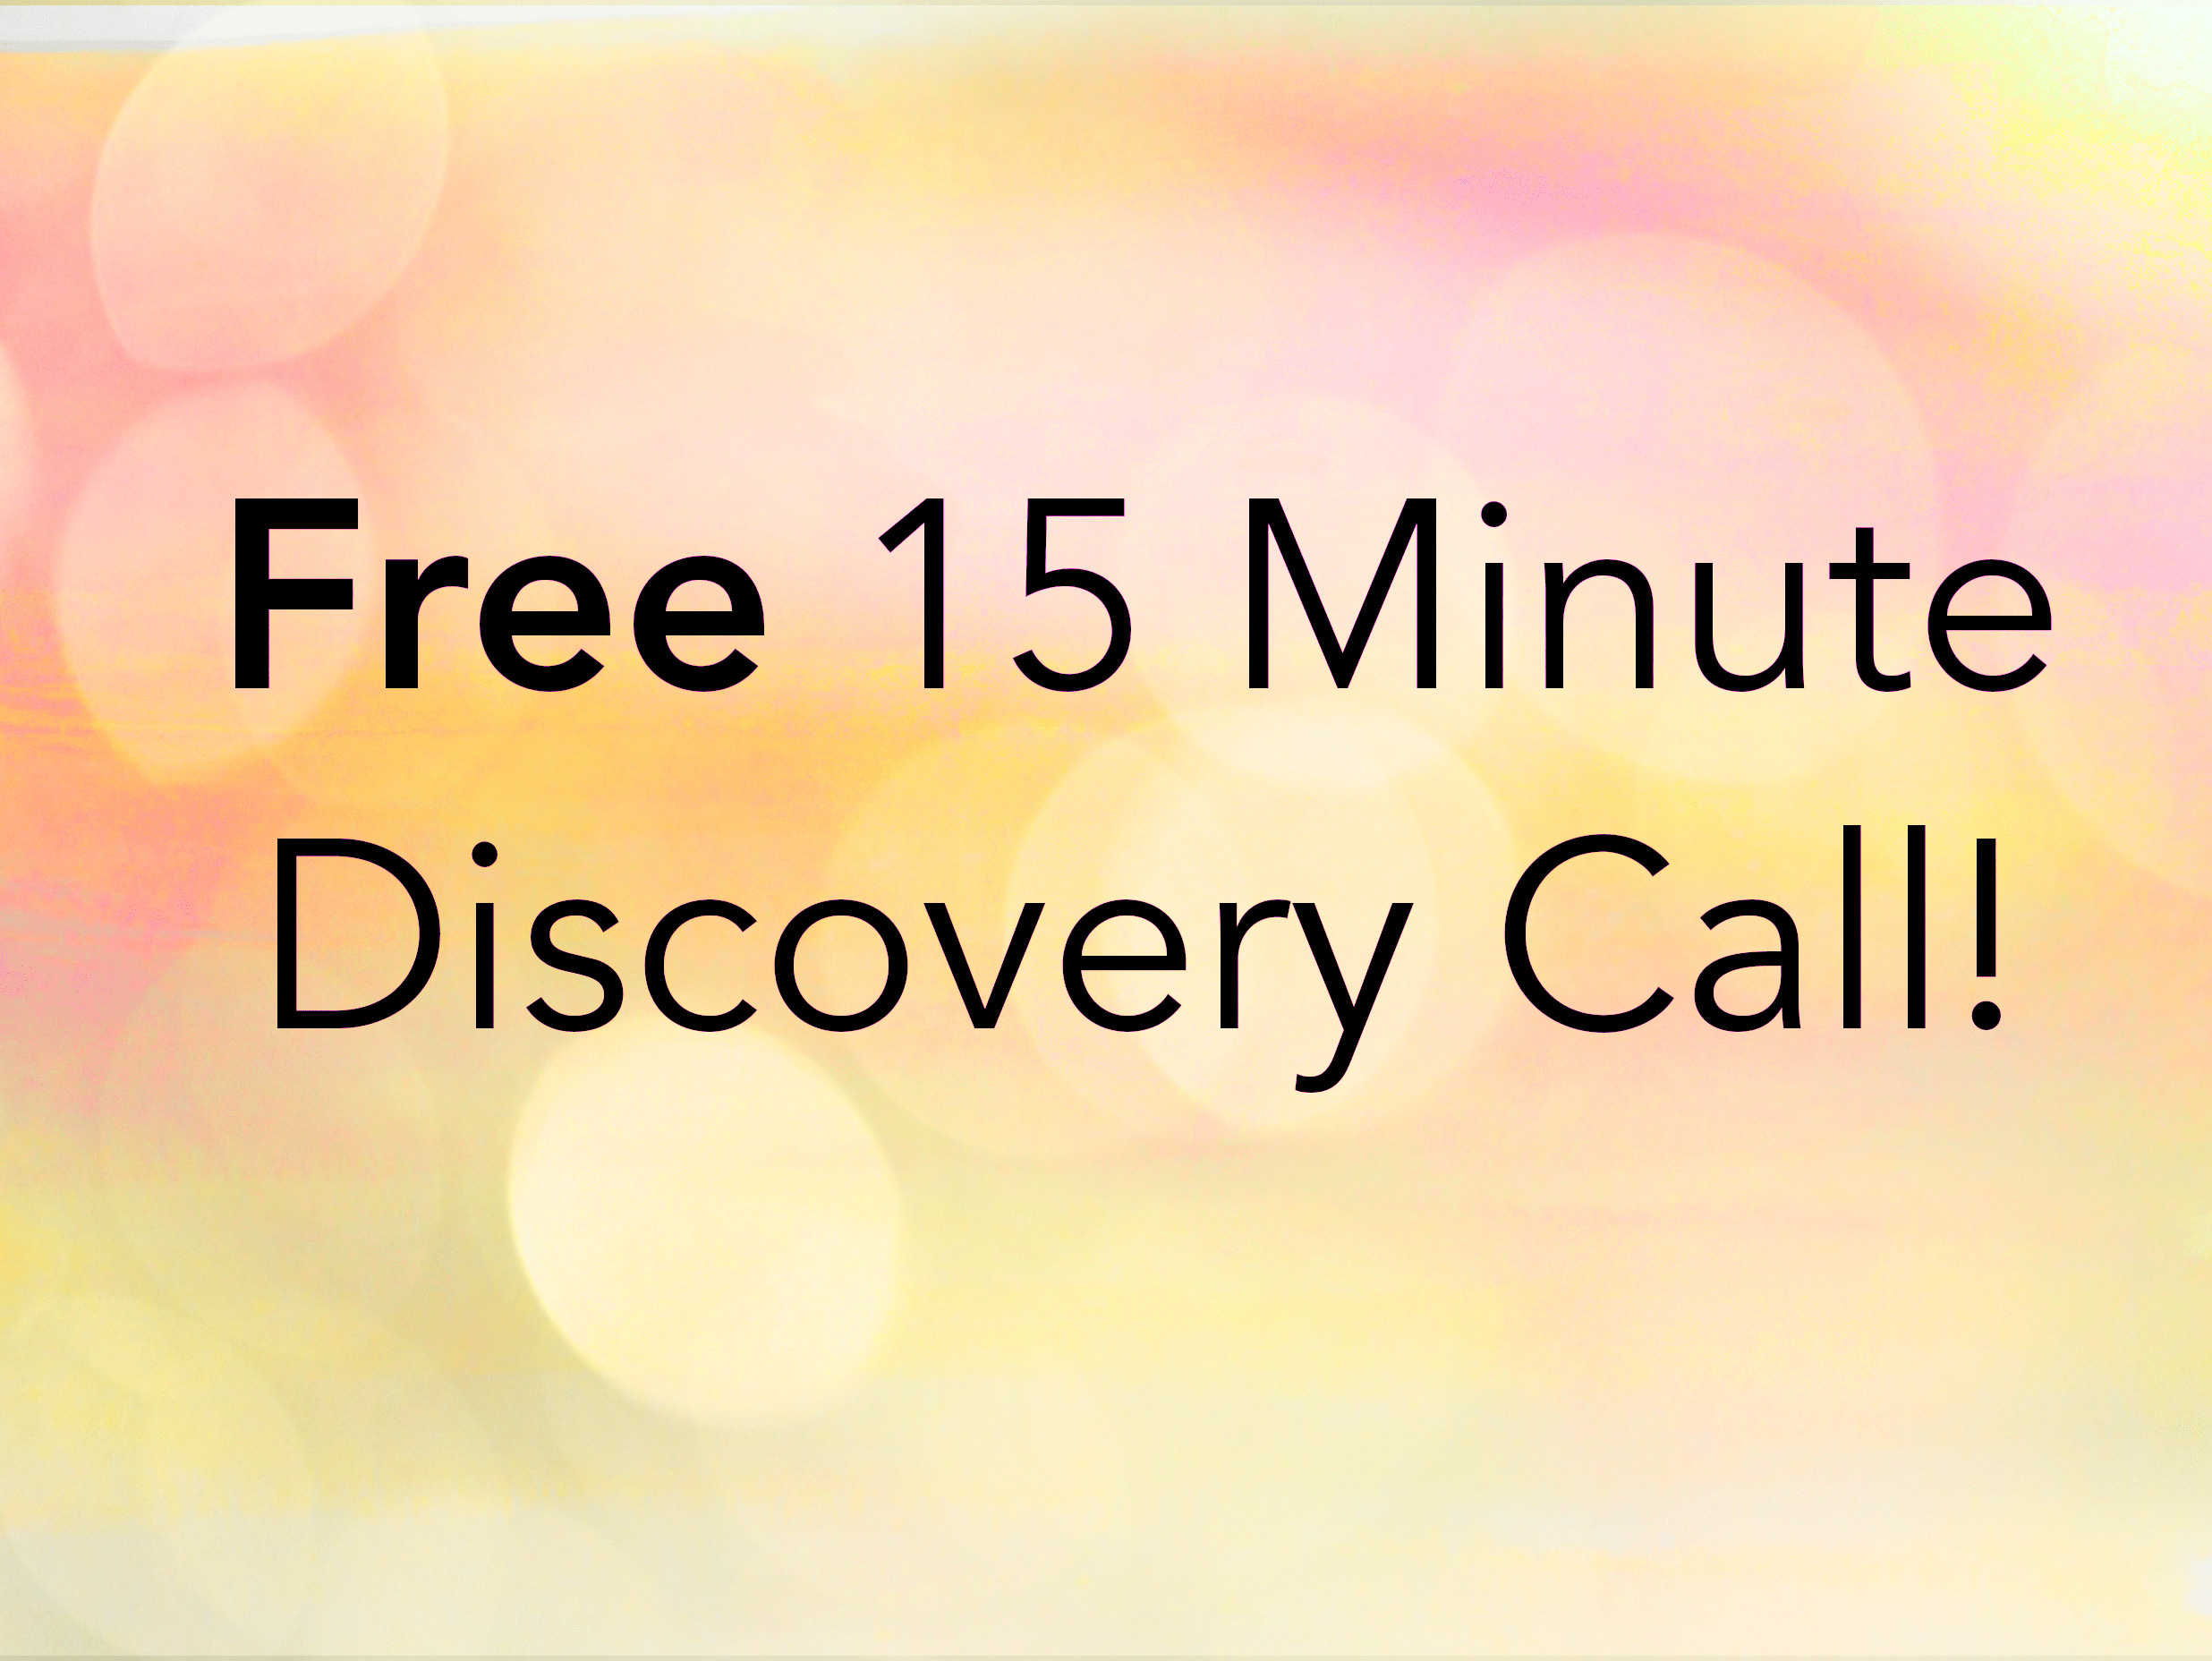 Free 15 Minute Consult